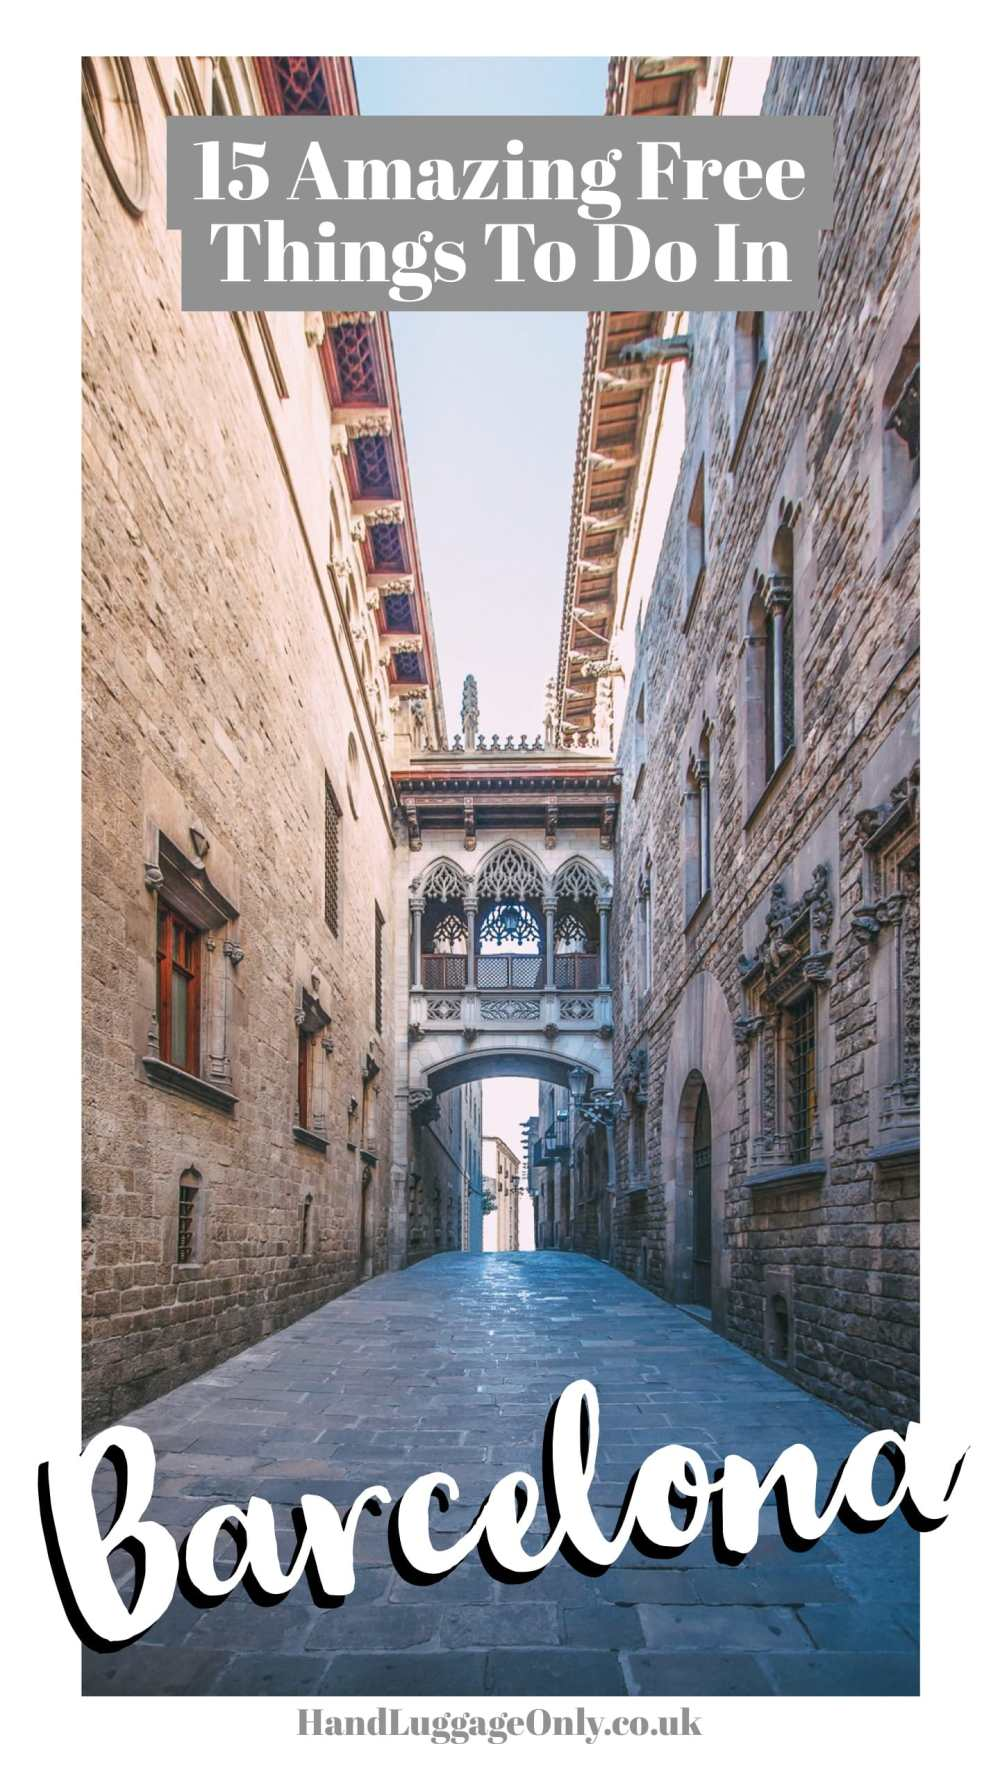 15 Amazing Free Things to do in Barcelona (1)